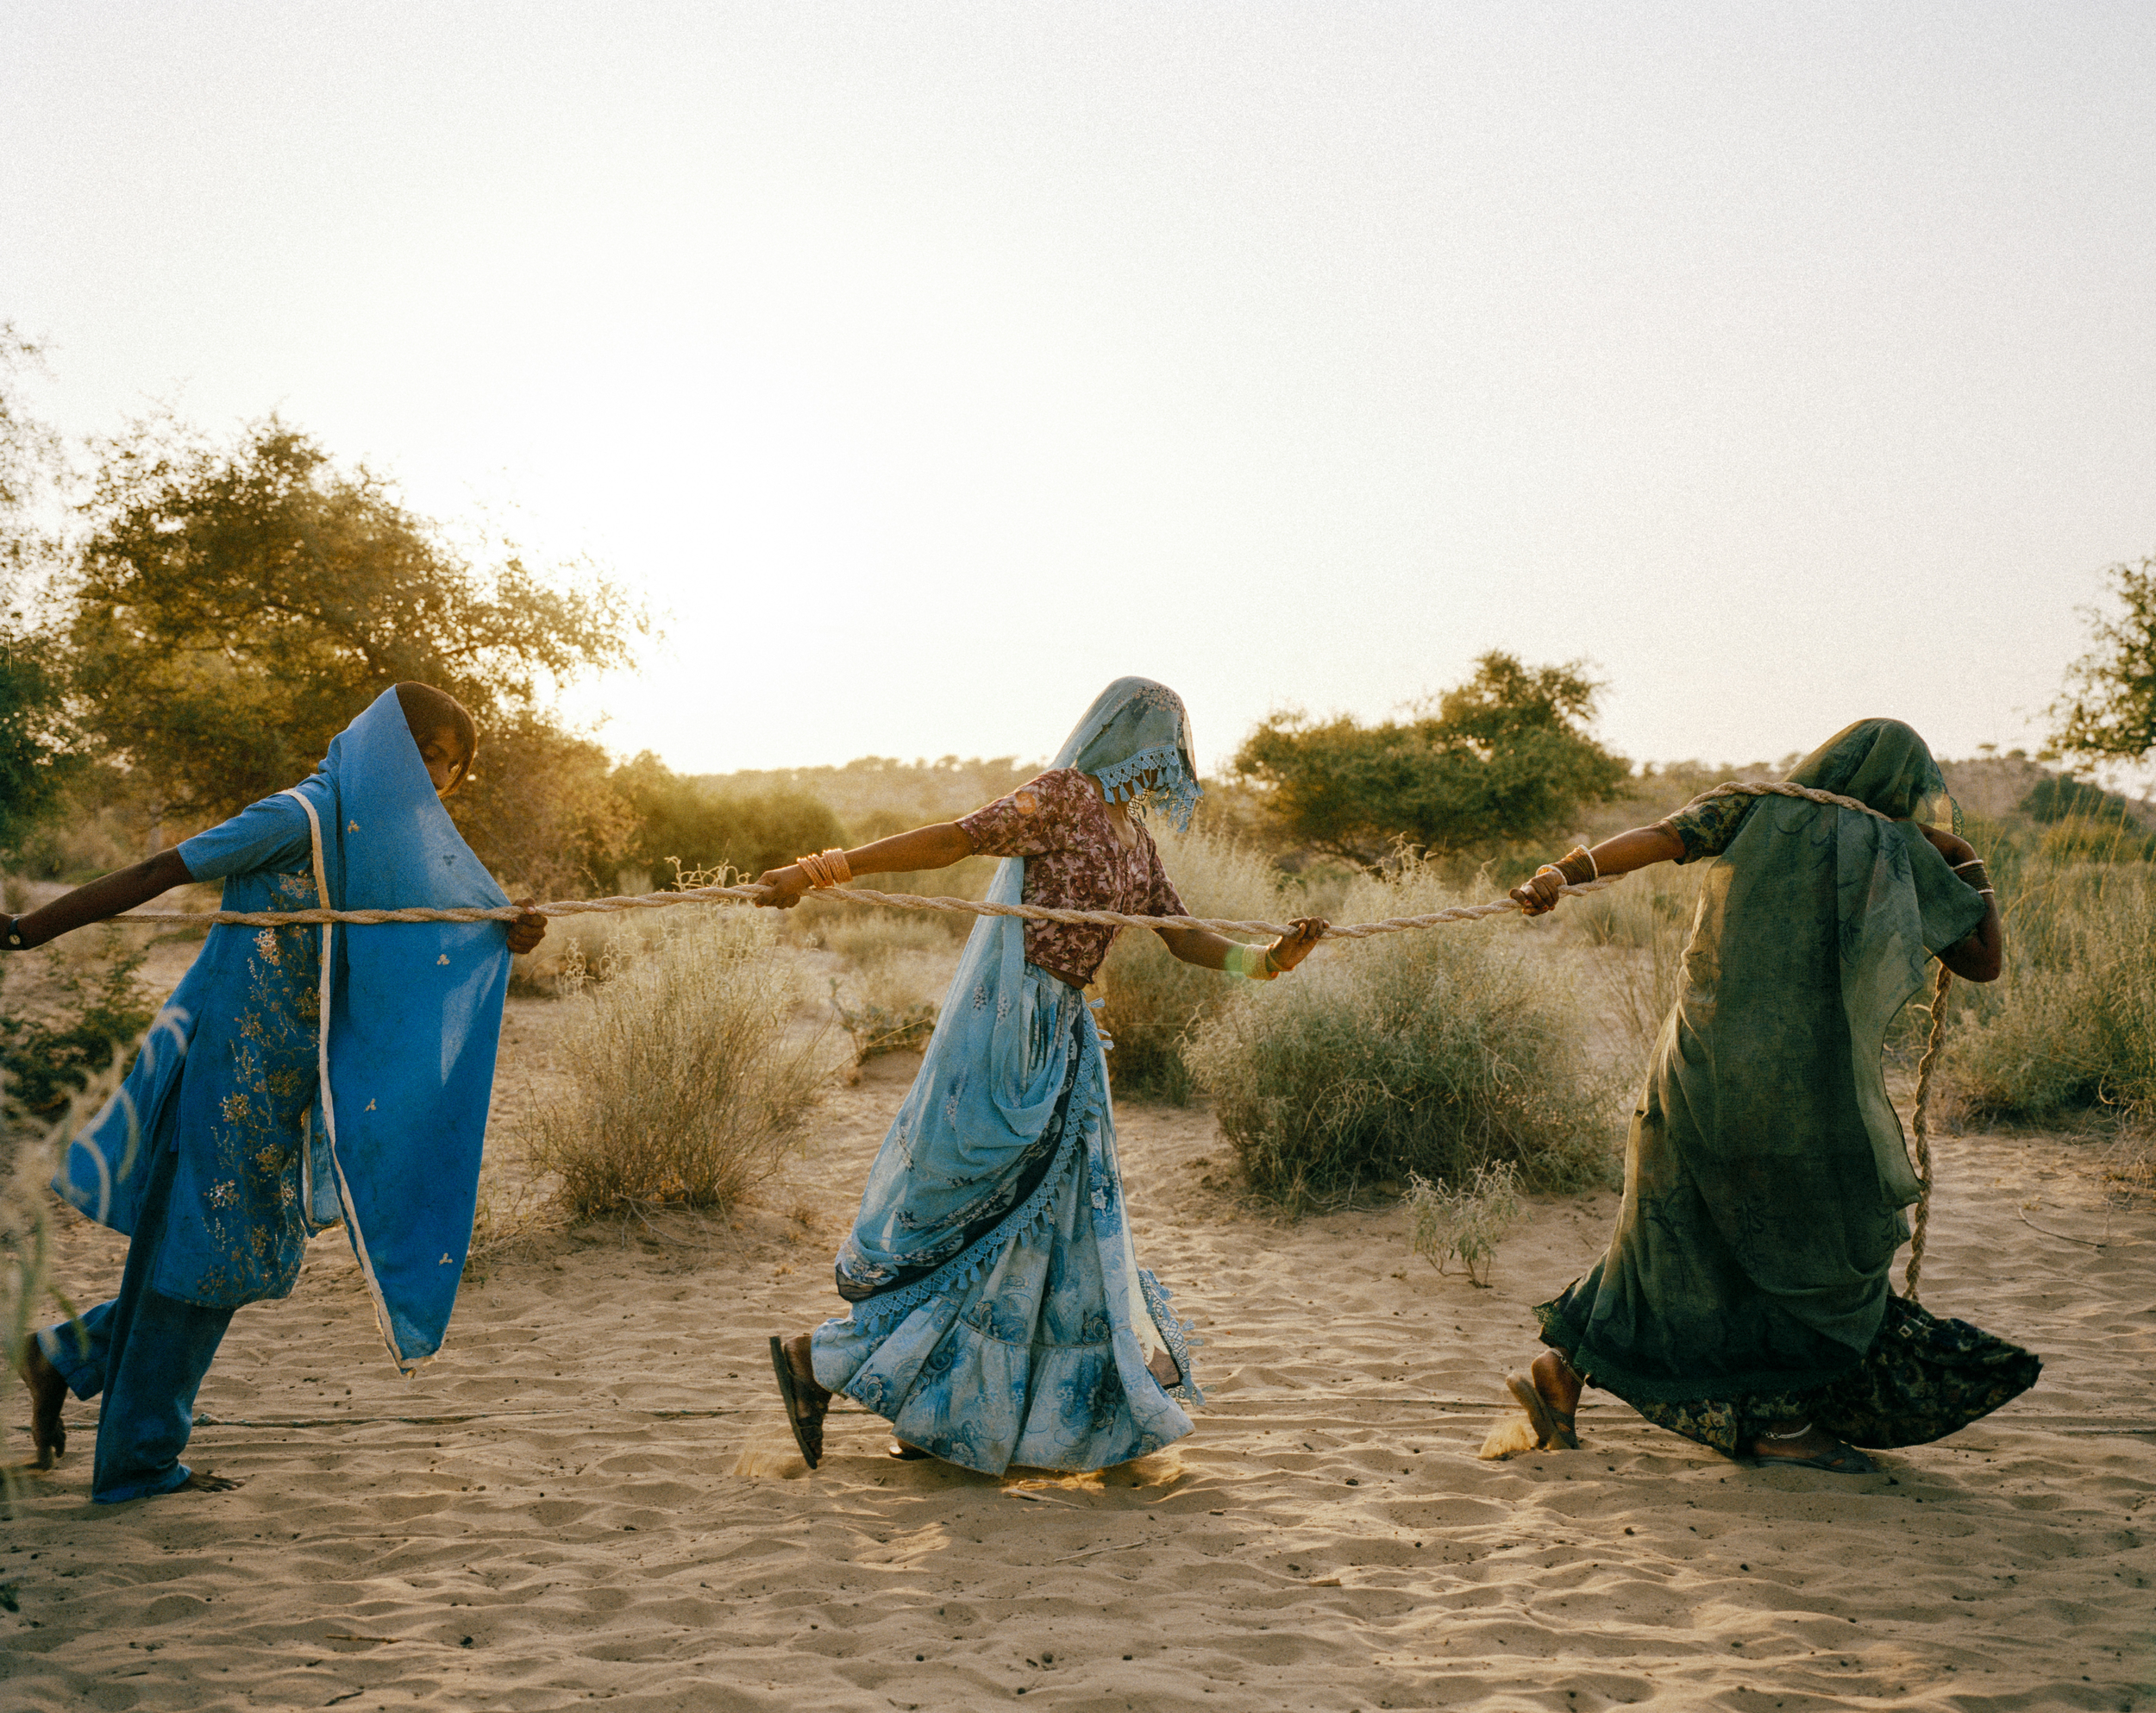 "Women pull water from a well, Tharpakar, Pakistan, 2013.   In the Thar desert, temperatures hover at 48-50°C on summer days. With an extremely low water table and continuing drought, sometimes water must be hauled from a depth of 150-200 feet. ""Women fall unconscious on their way to these dug wells,"" said Marvi Bheel, 45, a resident of Bewatoo, Tharparkar. The unending pursuit for water is a heavy demand on women worldwide. From the water-scarce regions in southern Ethiopia to the desert wells of Pakistan, it is women who are primarily responsible for gathering water. Credit: WaterAid/ Mustafah Abdulaziz"